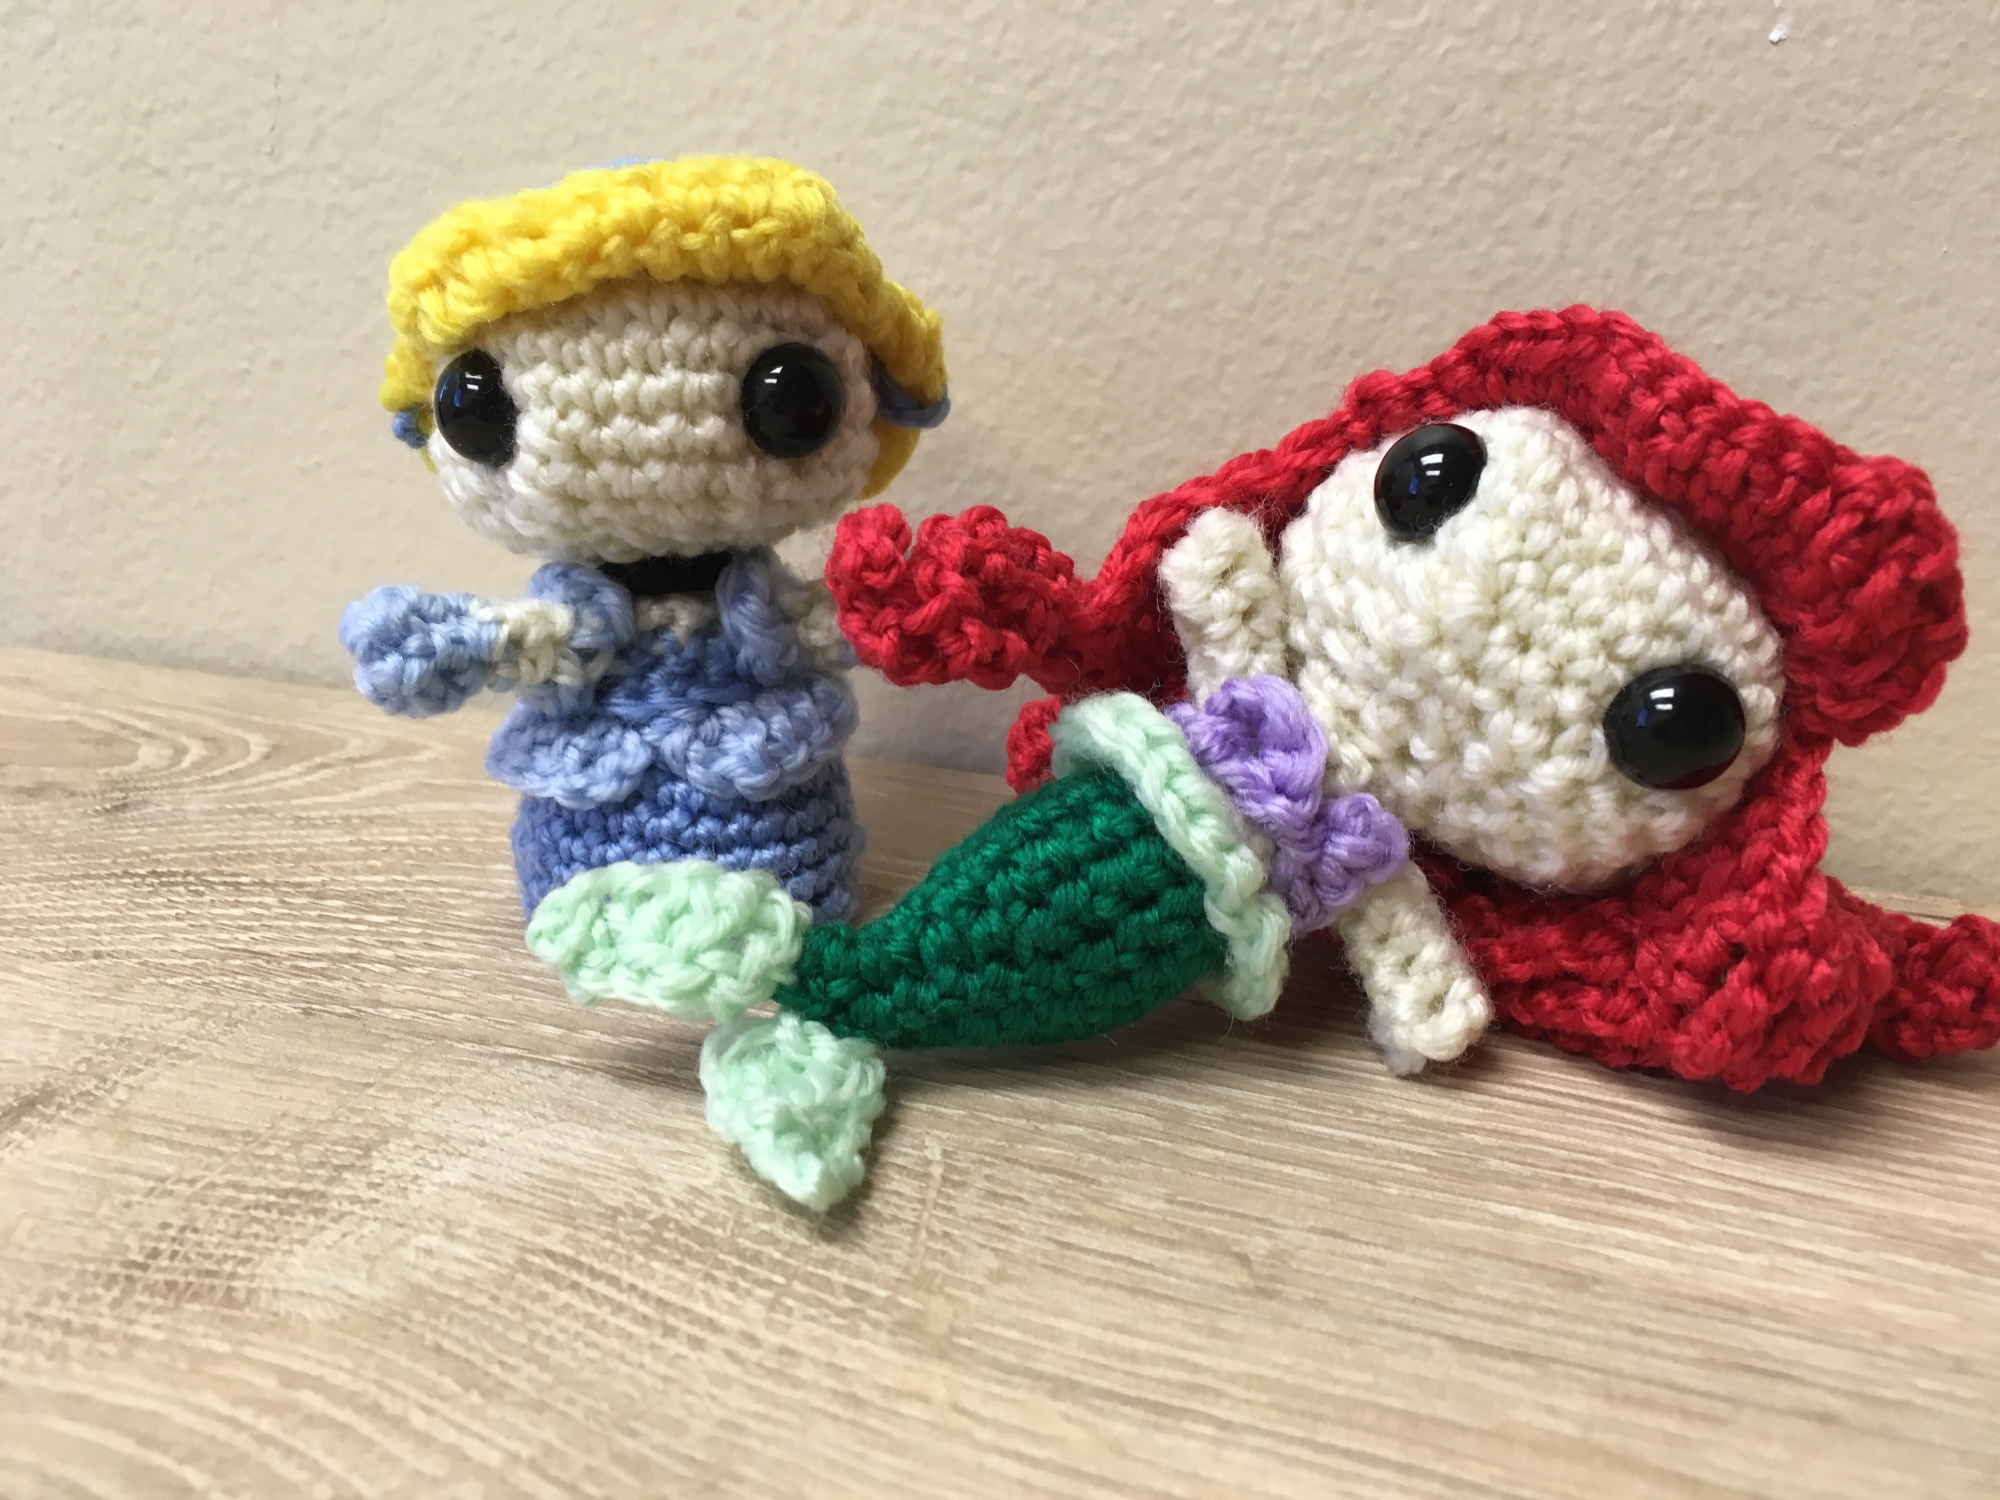 Disney Princess - Free Crochet Pattern - Salvabrani | Crochet doll ... | 1500x2000